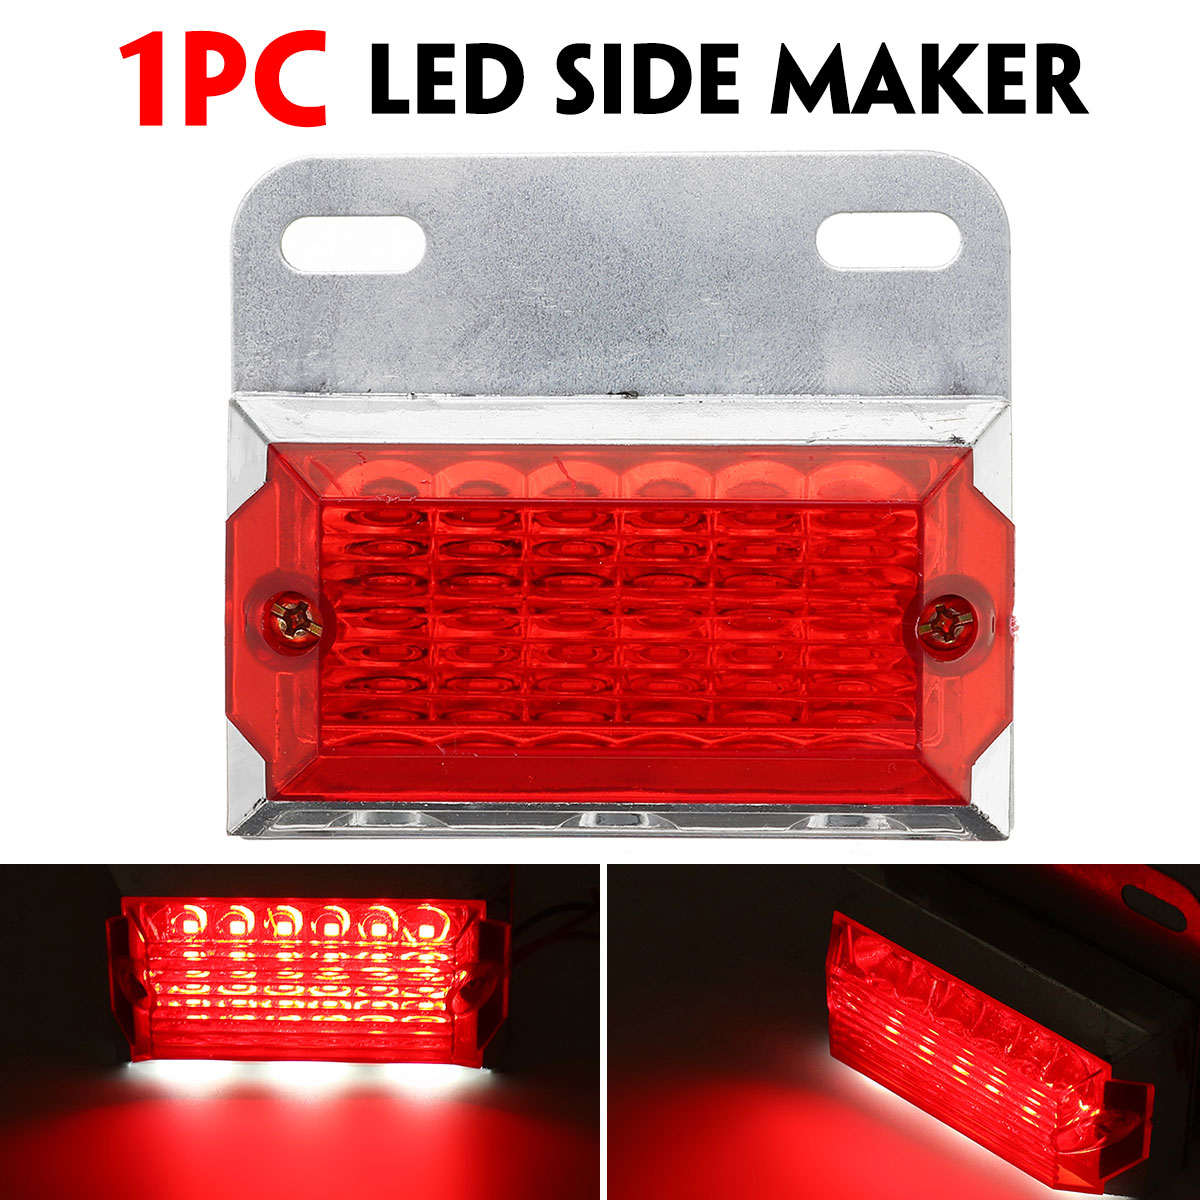 24V 15 LED Side Marker Lights Car External Lights Squarde Warning Tail Light Signal Lamps Auto Trailer Truck Lorry Red